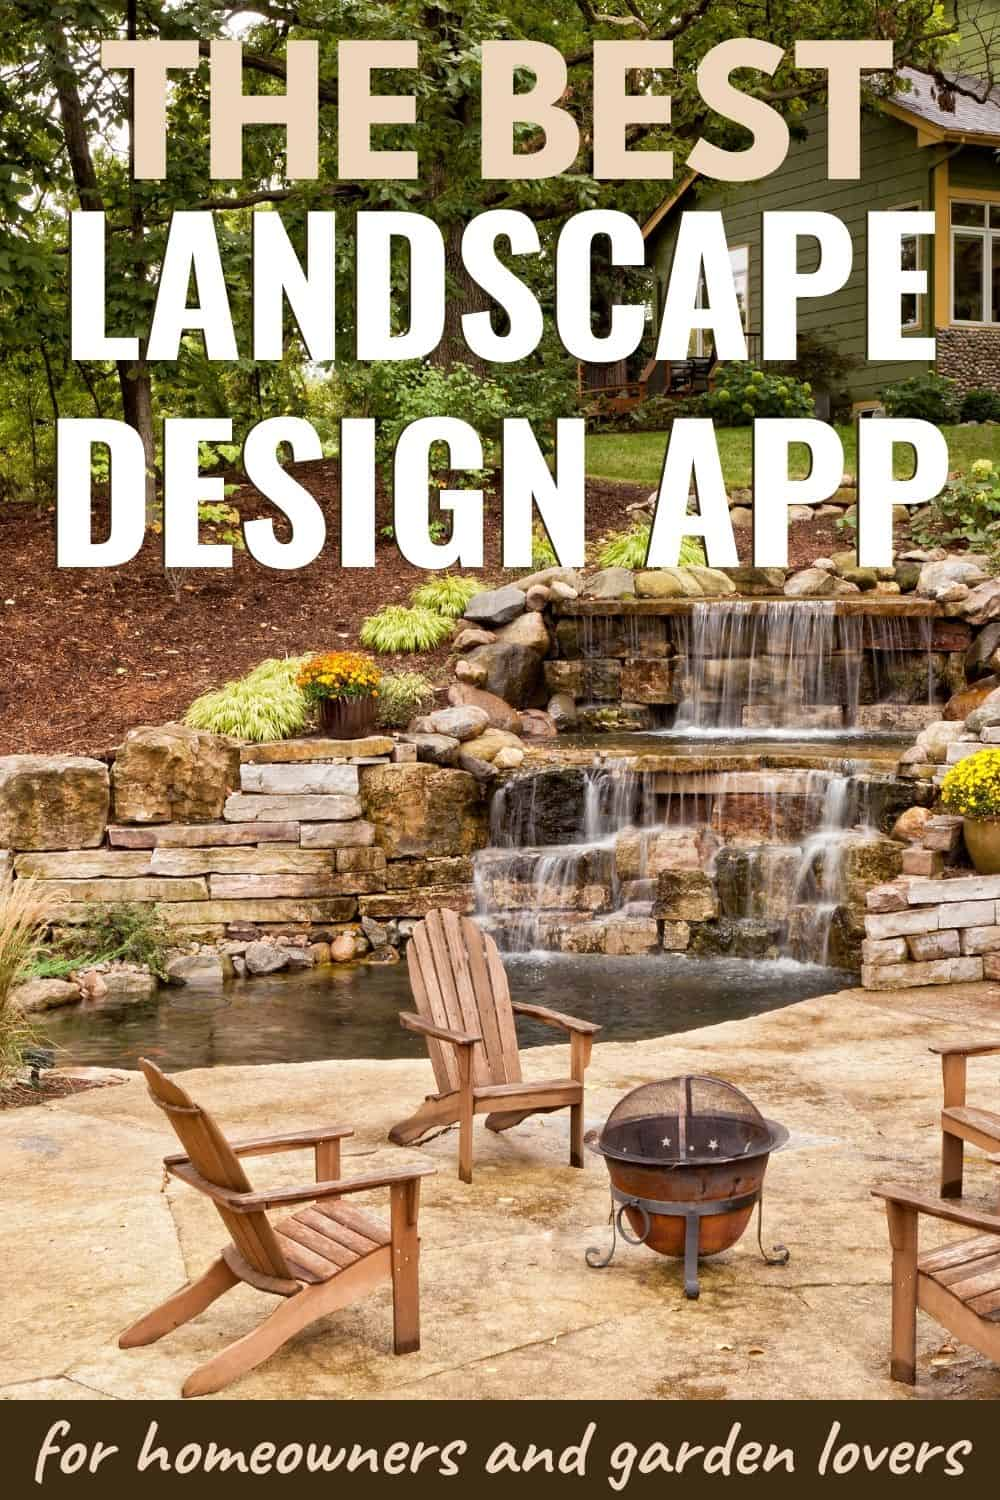 The best landscape design app for homeowners and garden lovers